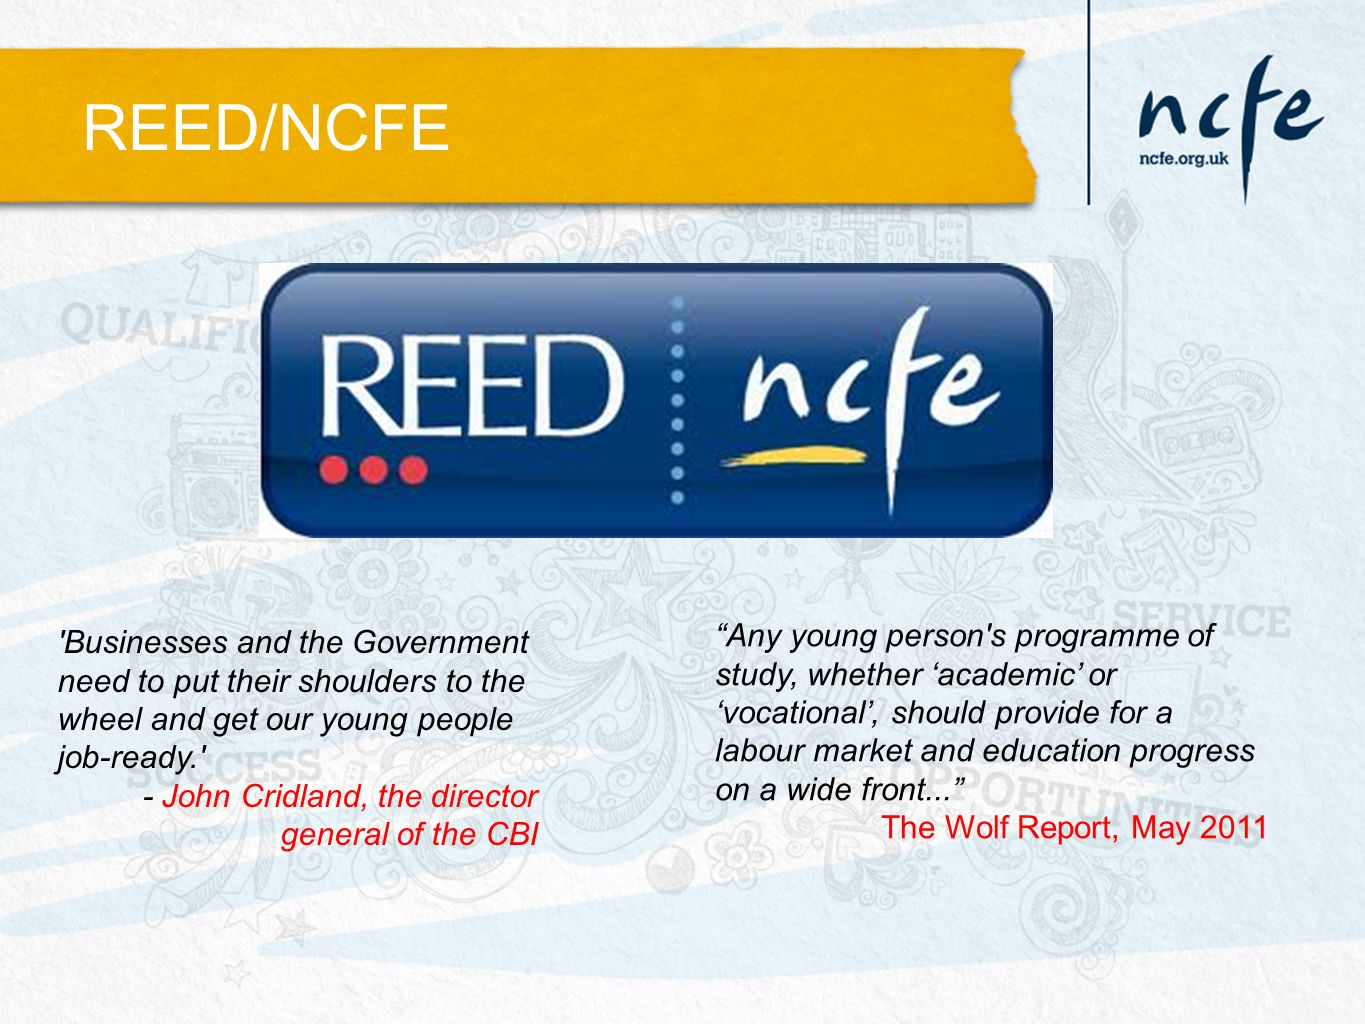 REED/NCFE Any young person s programme of study, whether 'academic' or 'vocational', should provide for a labour market and education progress on a wide front... The Wolf Report, May 2011 Businesses and the Government need to put their shoulders to the wheel and get our young people job-ready. - John Cridland, the director general of the CBI